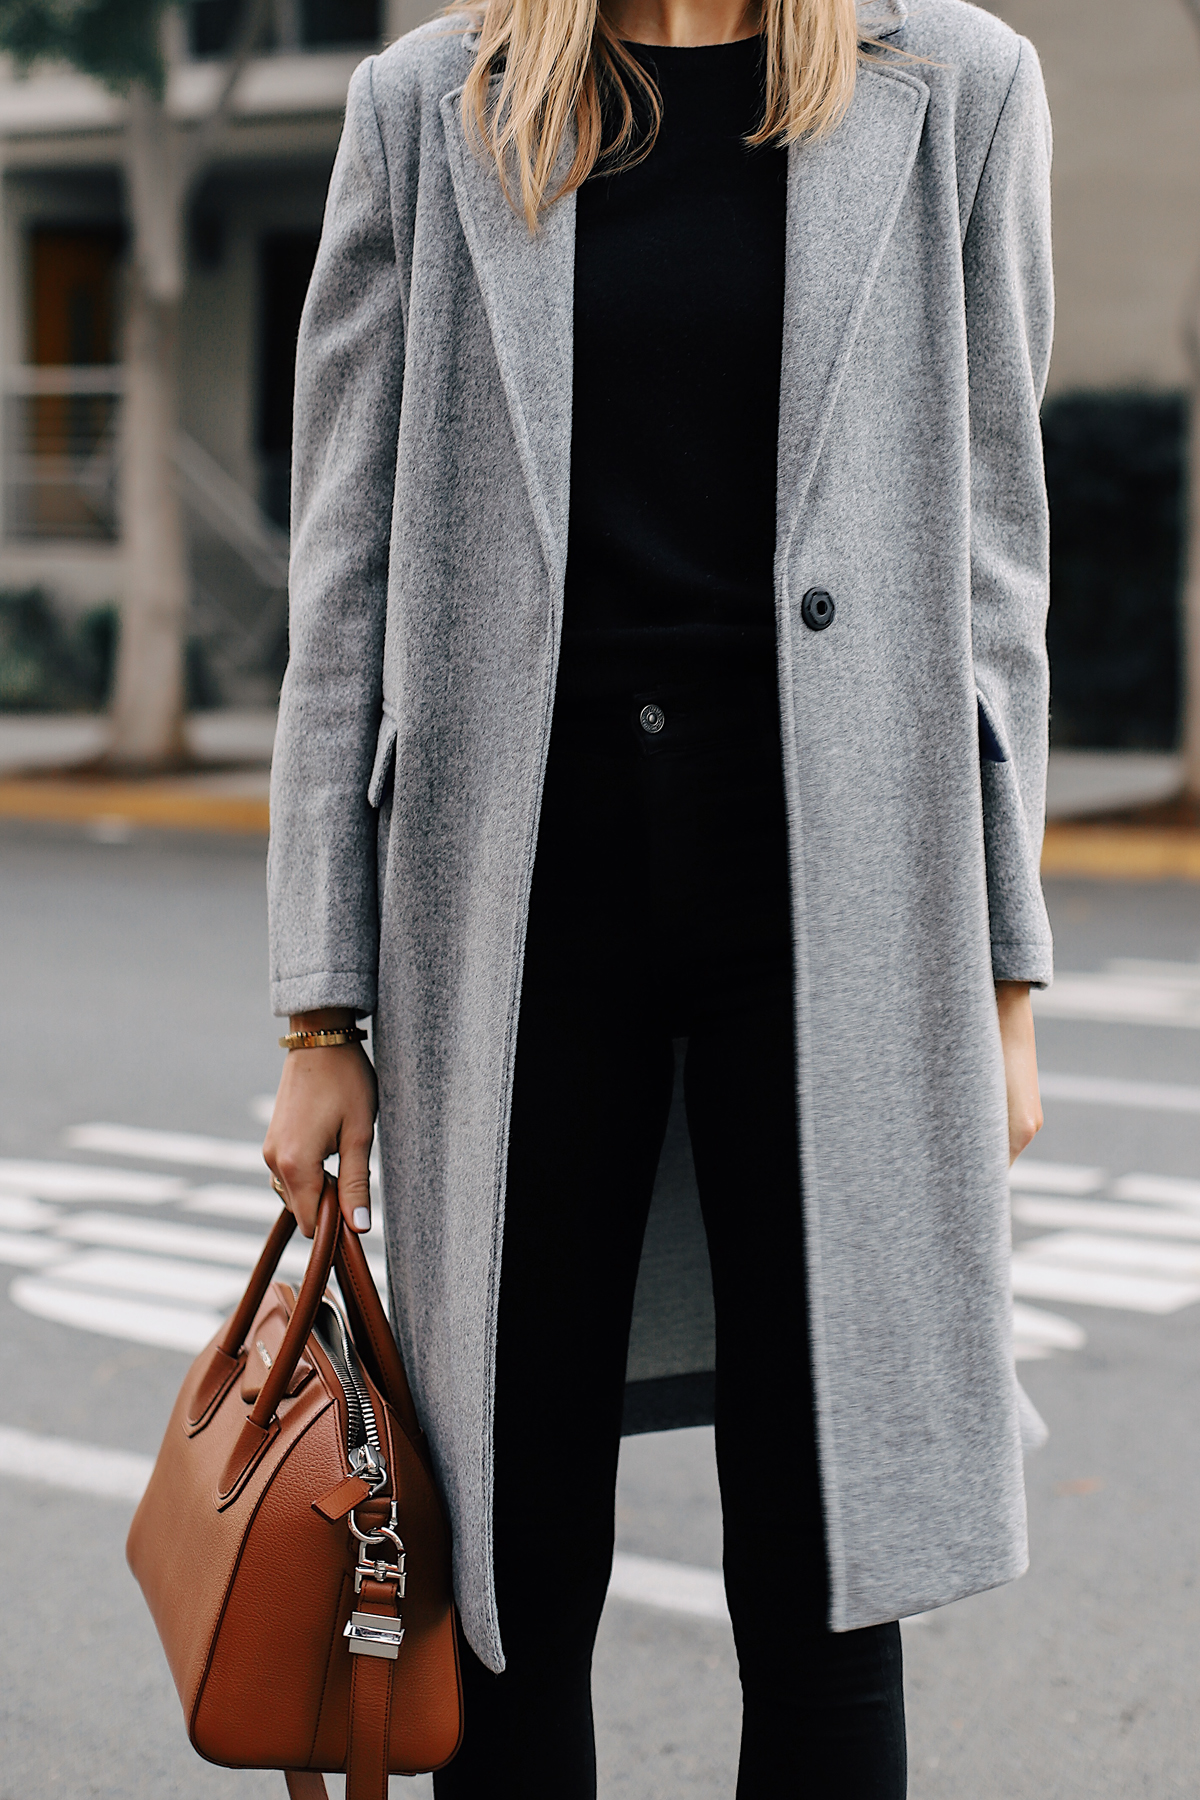 Woman Wearing Topshop Grey Coat Black Sweater Black Skinny Jeans Tan Satchel Handbag Fashion Jackson San Diego Fashion Blogger Street Style